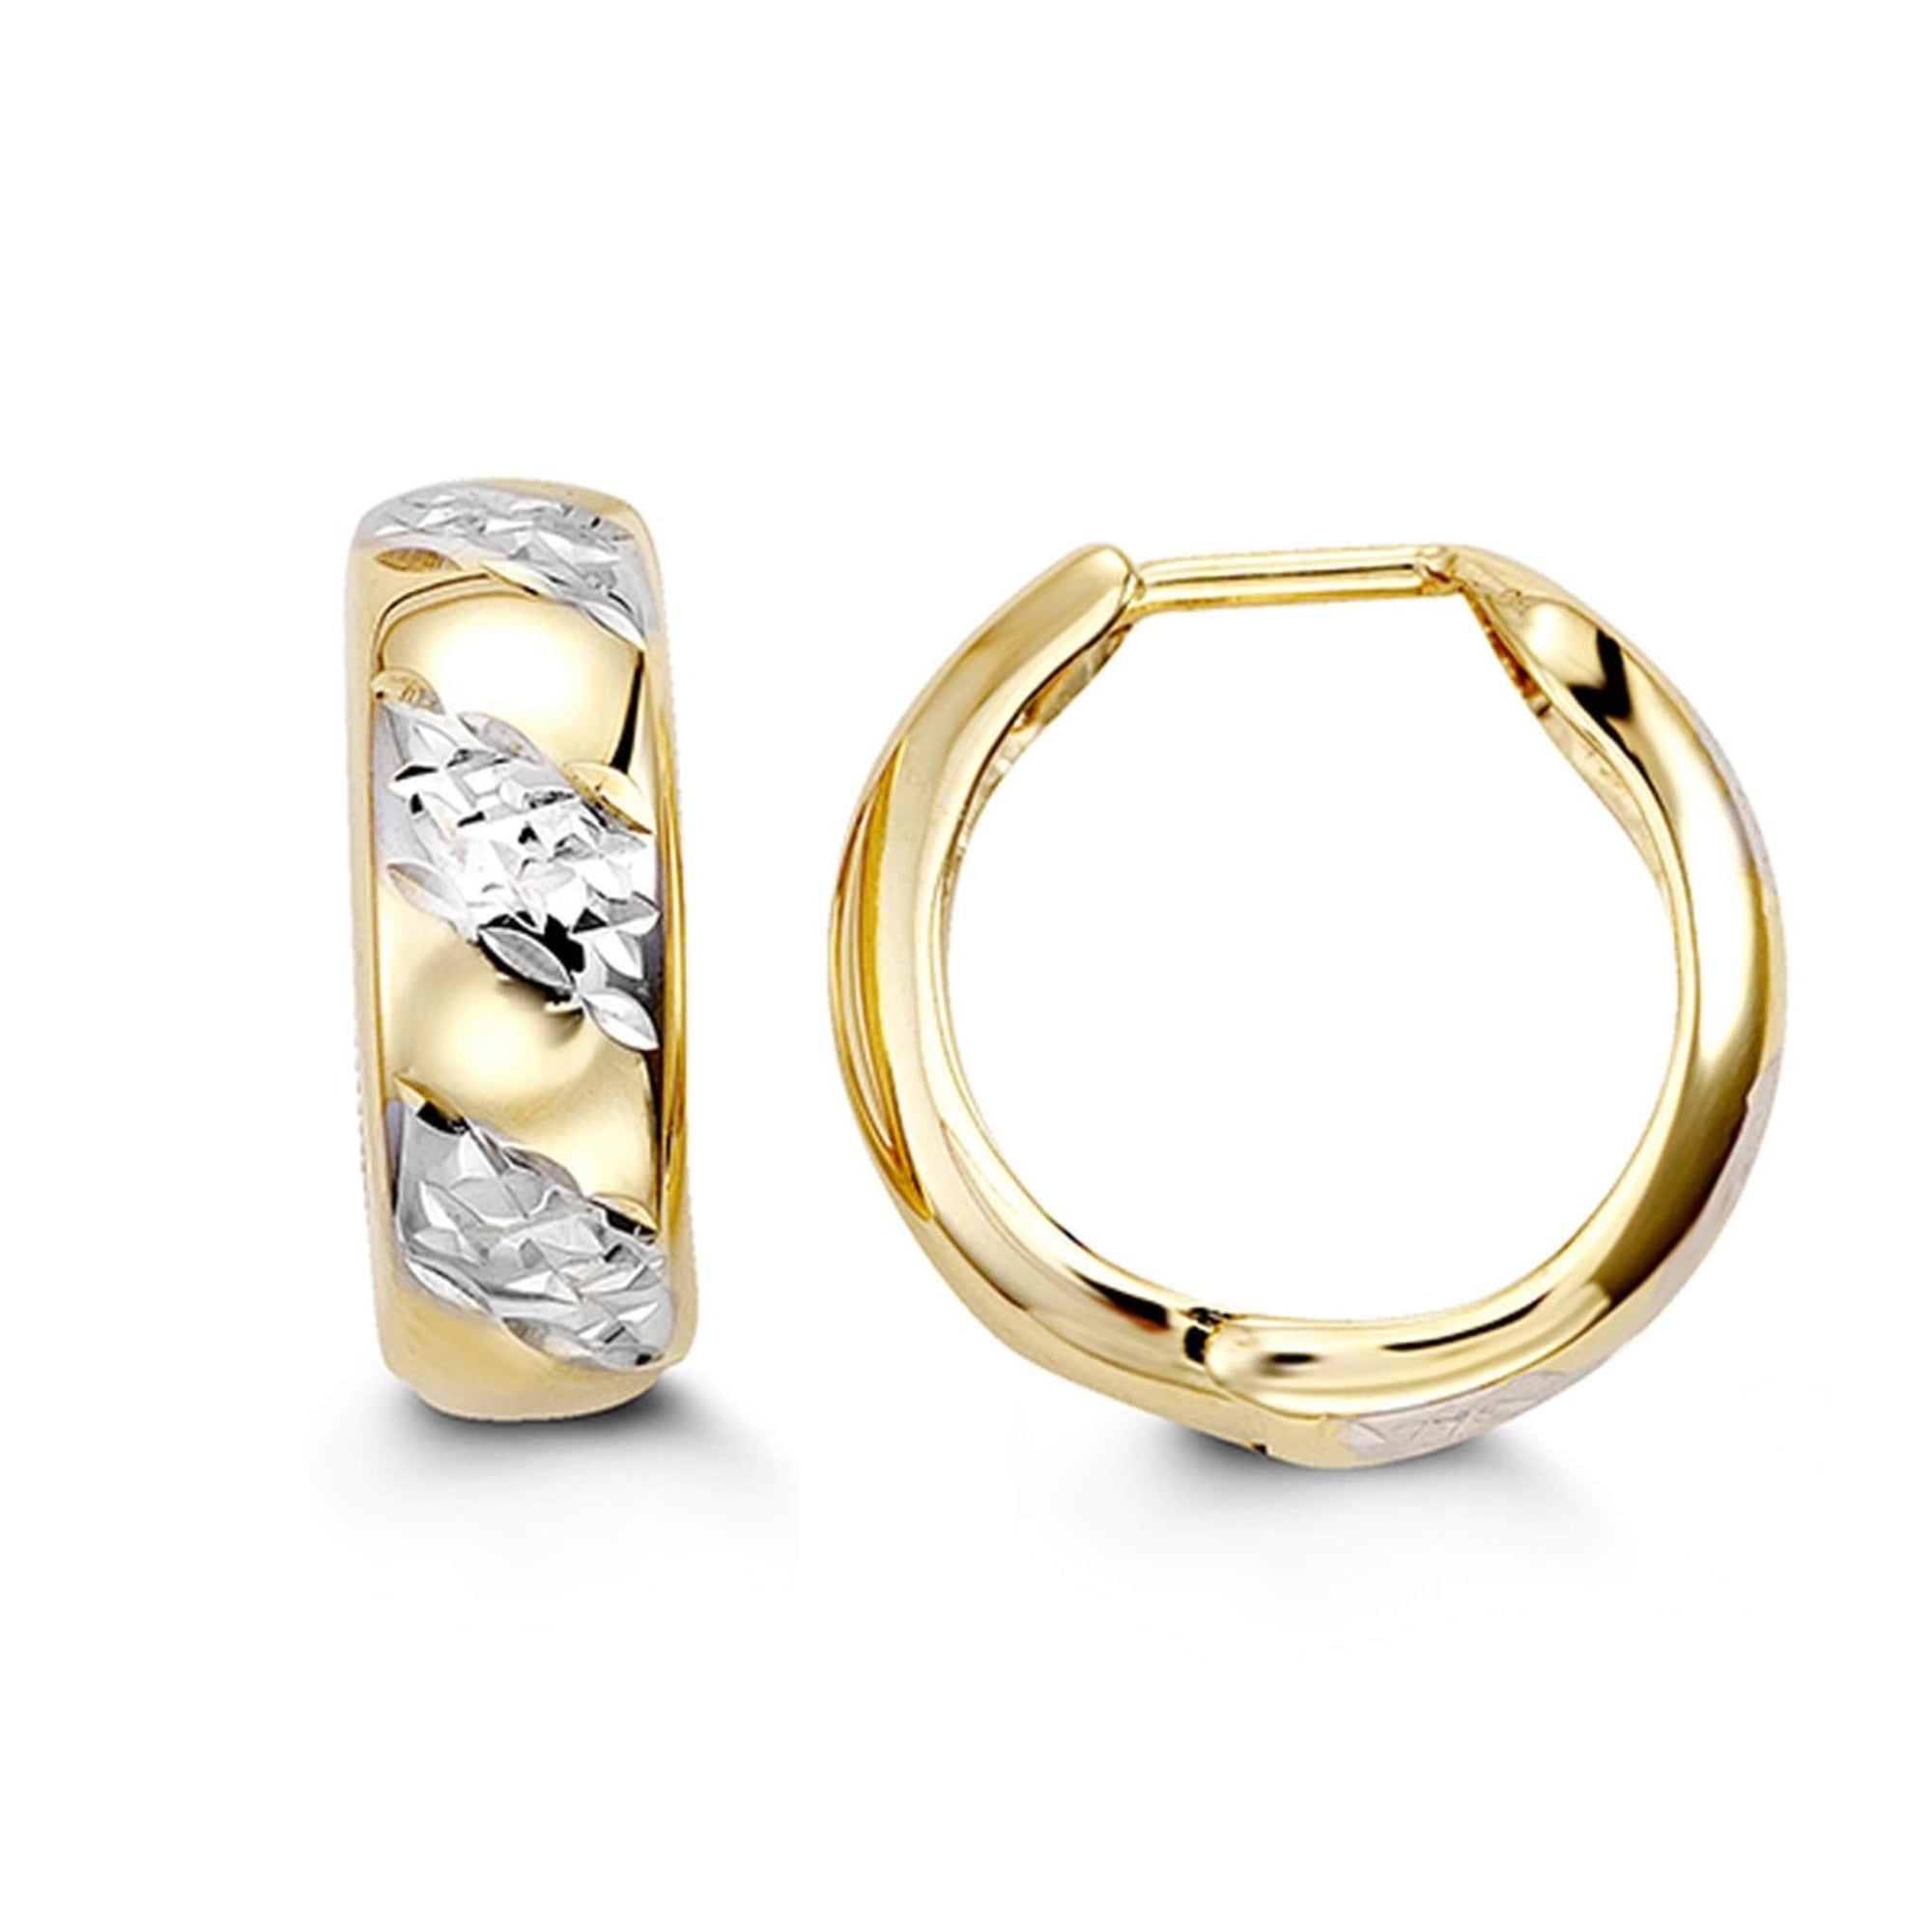 10K Two-Tone Diamond-Cut Huggie Hoop Earrings at Arman's Jewellers